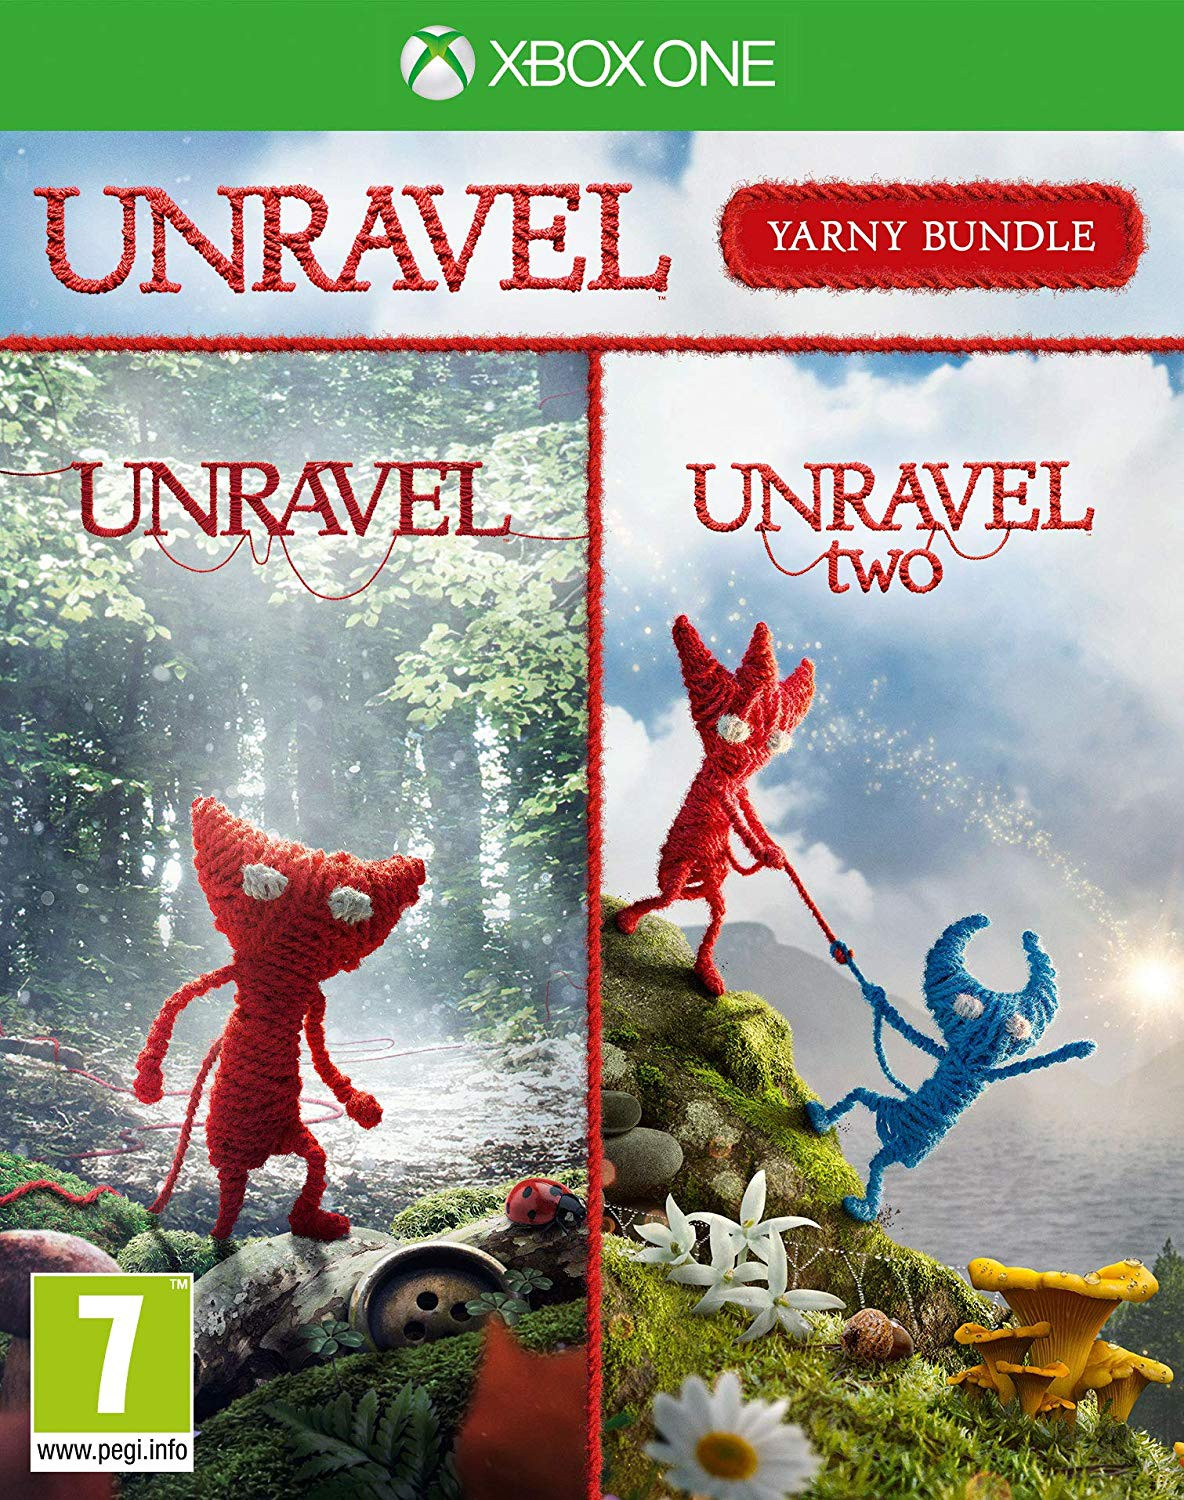 Unravel Yarny Bundle XBOX